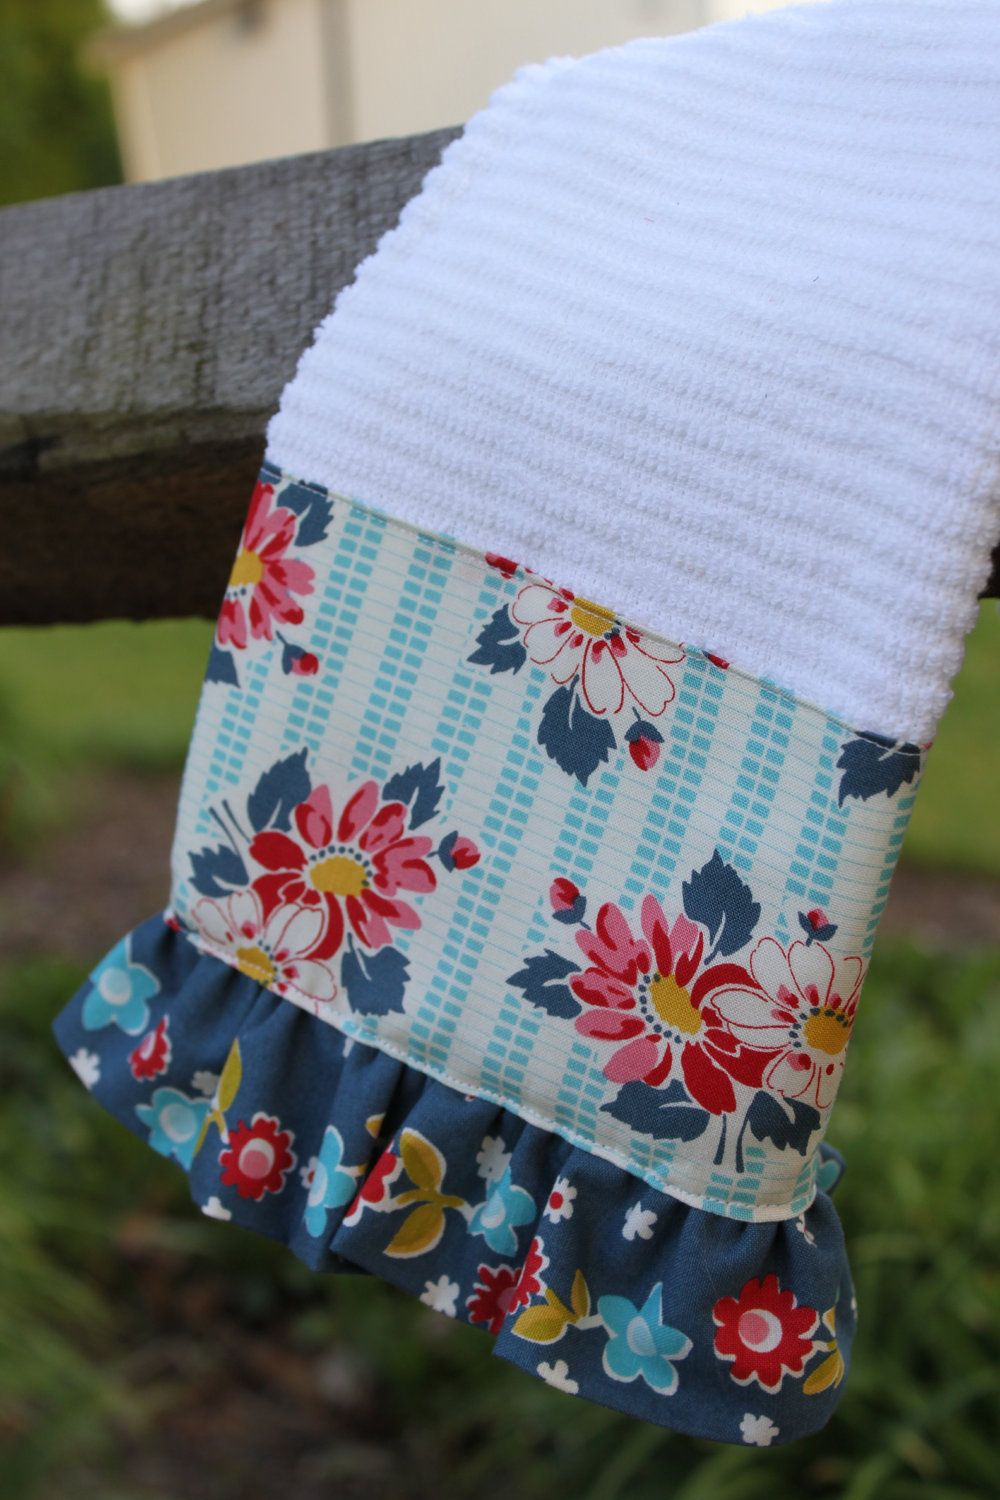 Vintage Inspired Ruffle Kitchen Towel/teal, blue, red, and white ...